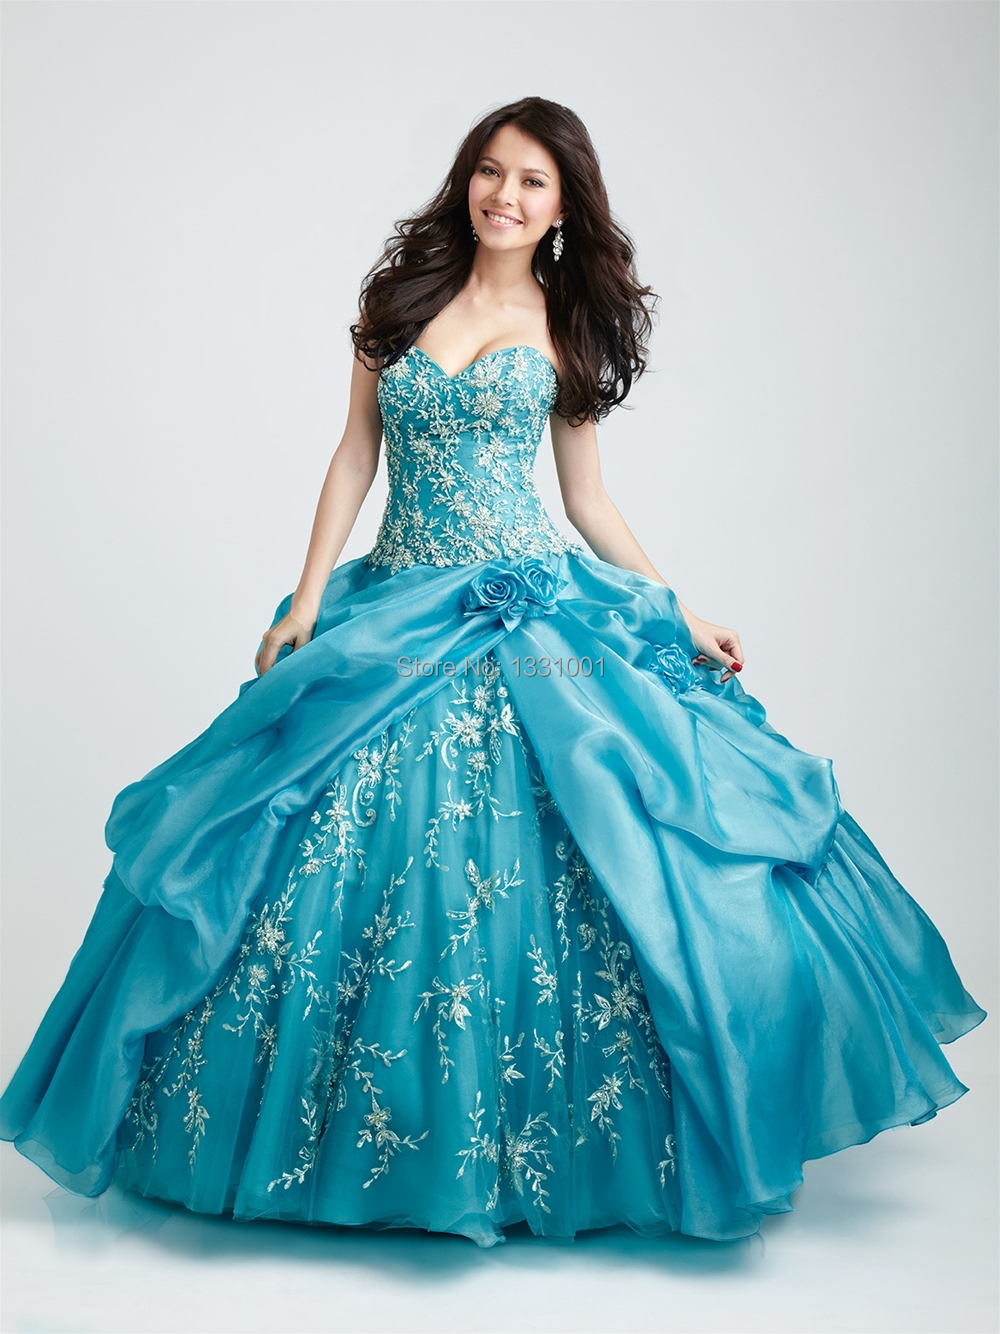 Sweet 16 Quinceanera Dresses Turquoise Sexy Masquerade Ball Gowns ...